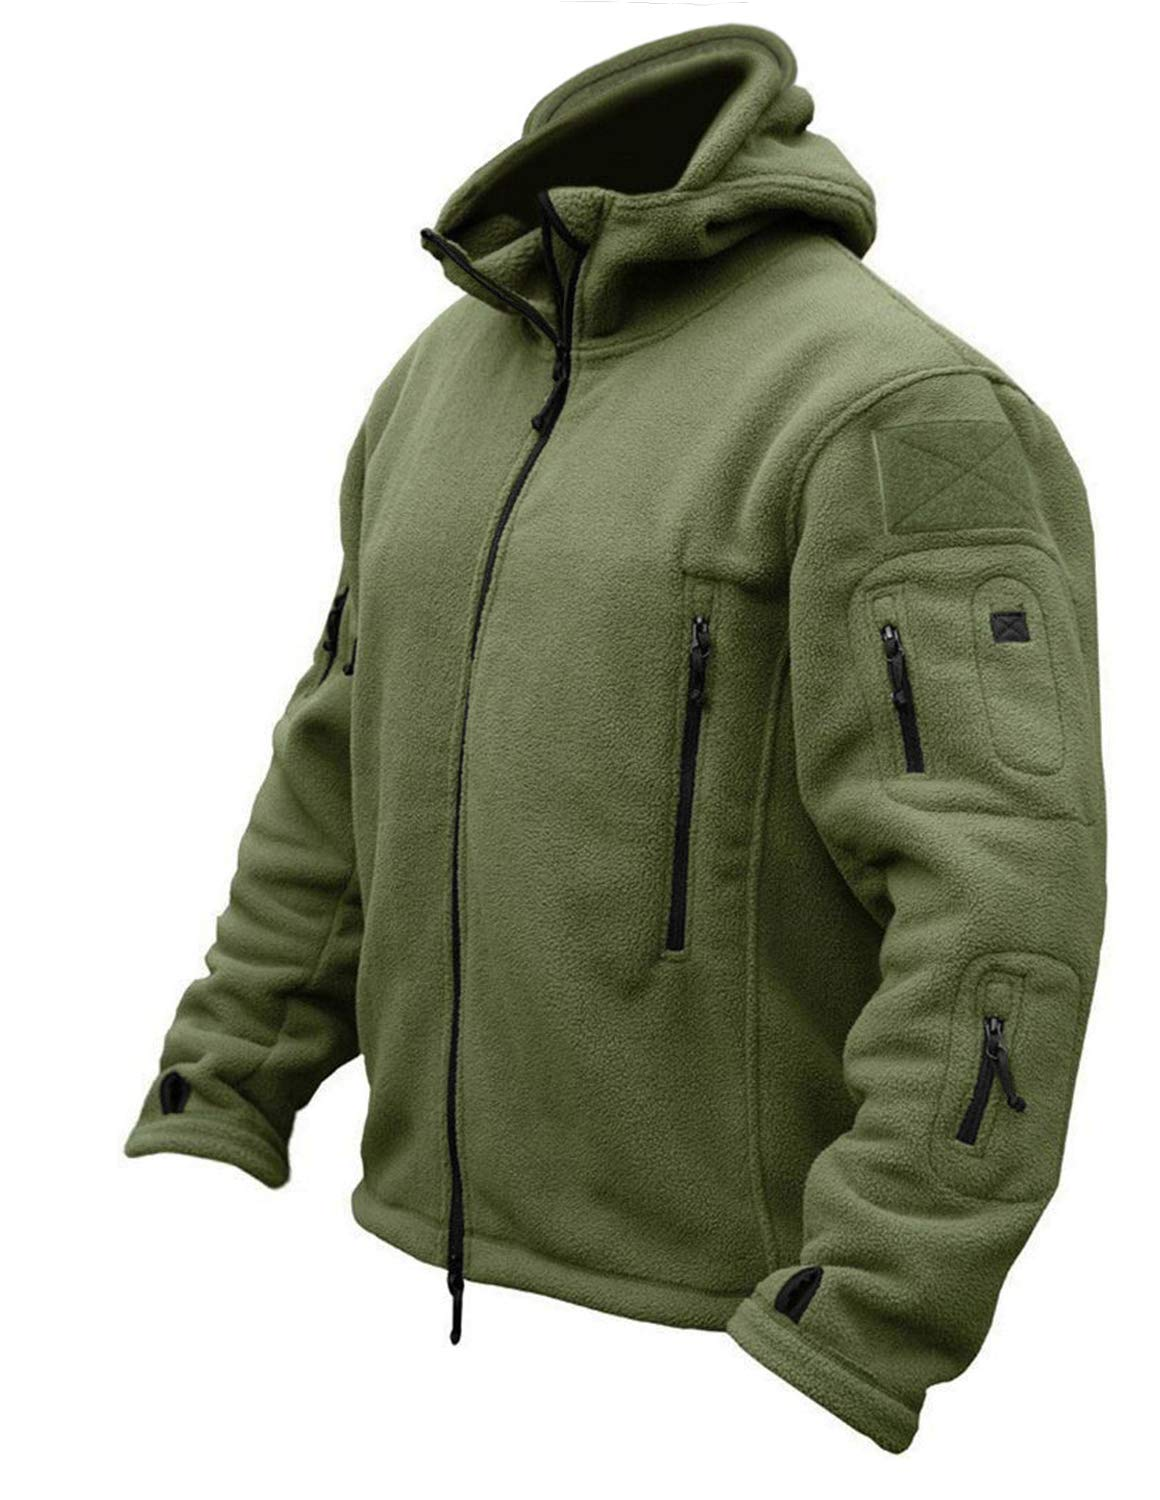 CRYSULLY Men's Tactical Front Zip Fleece Lining